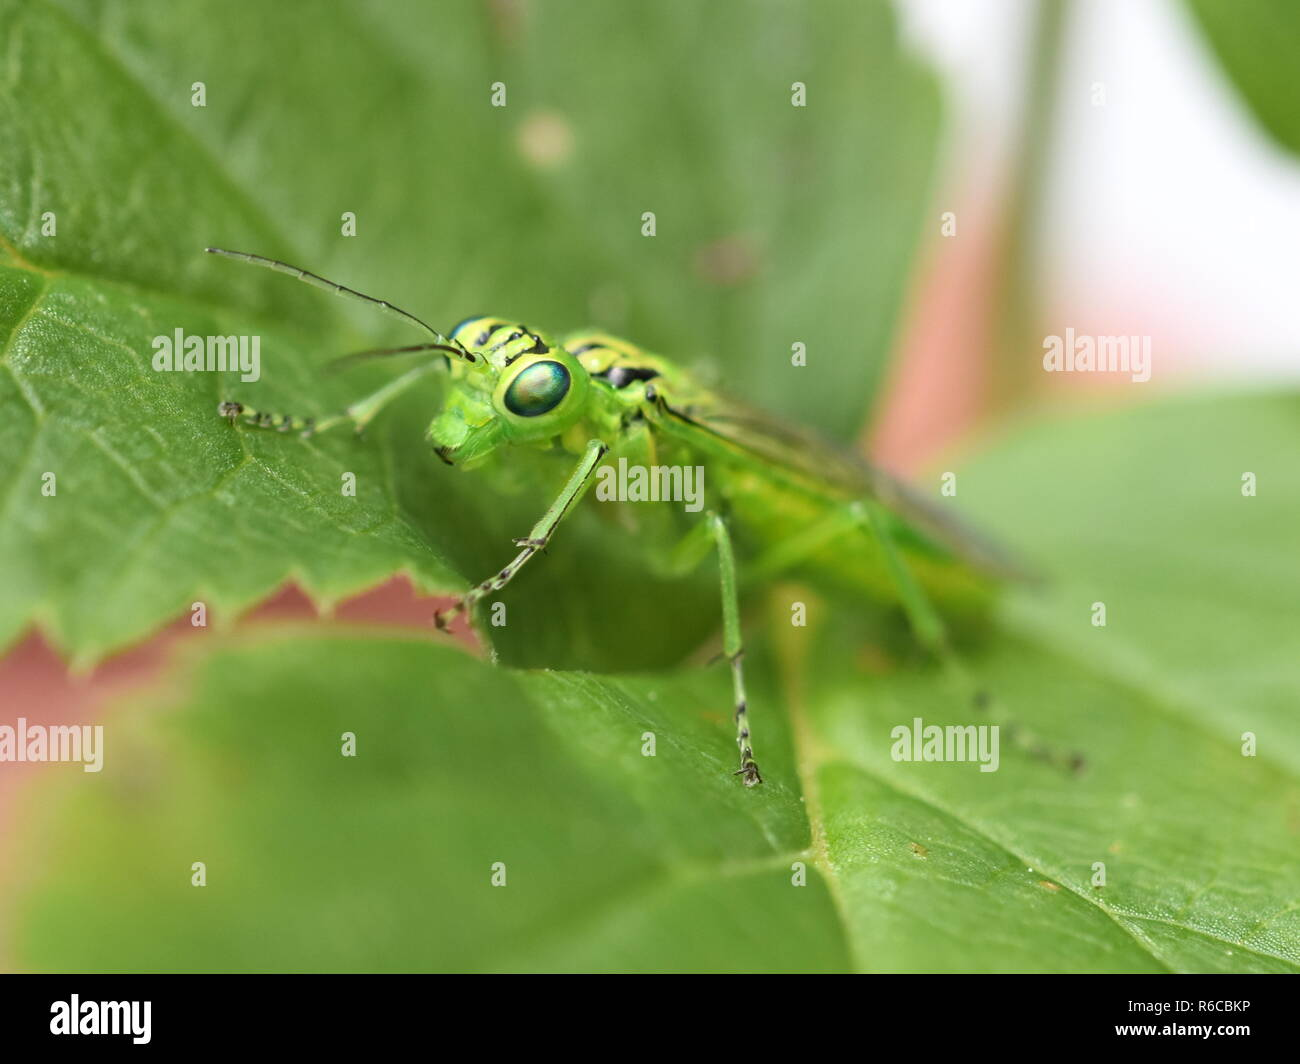 Closeup on the face of the green sawfly Rhogogaster punctulata on a leaf - Stock Image